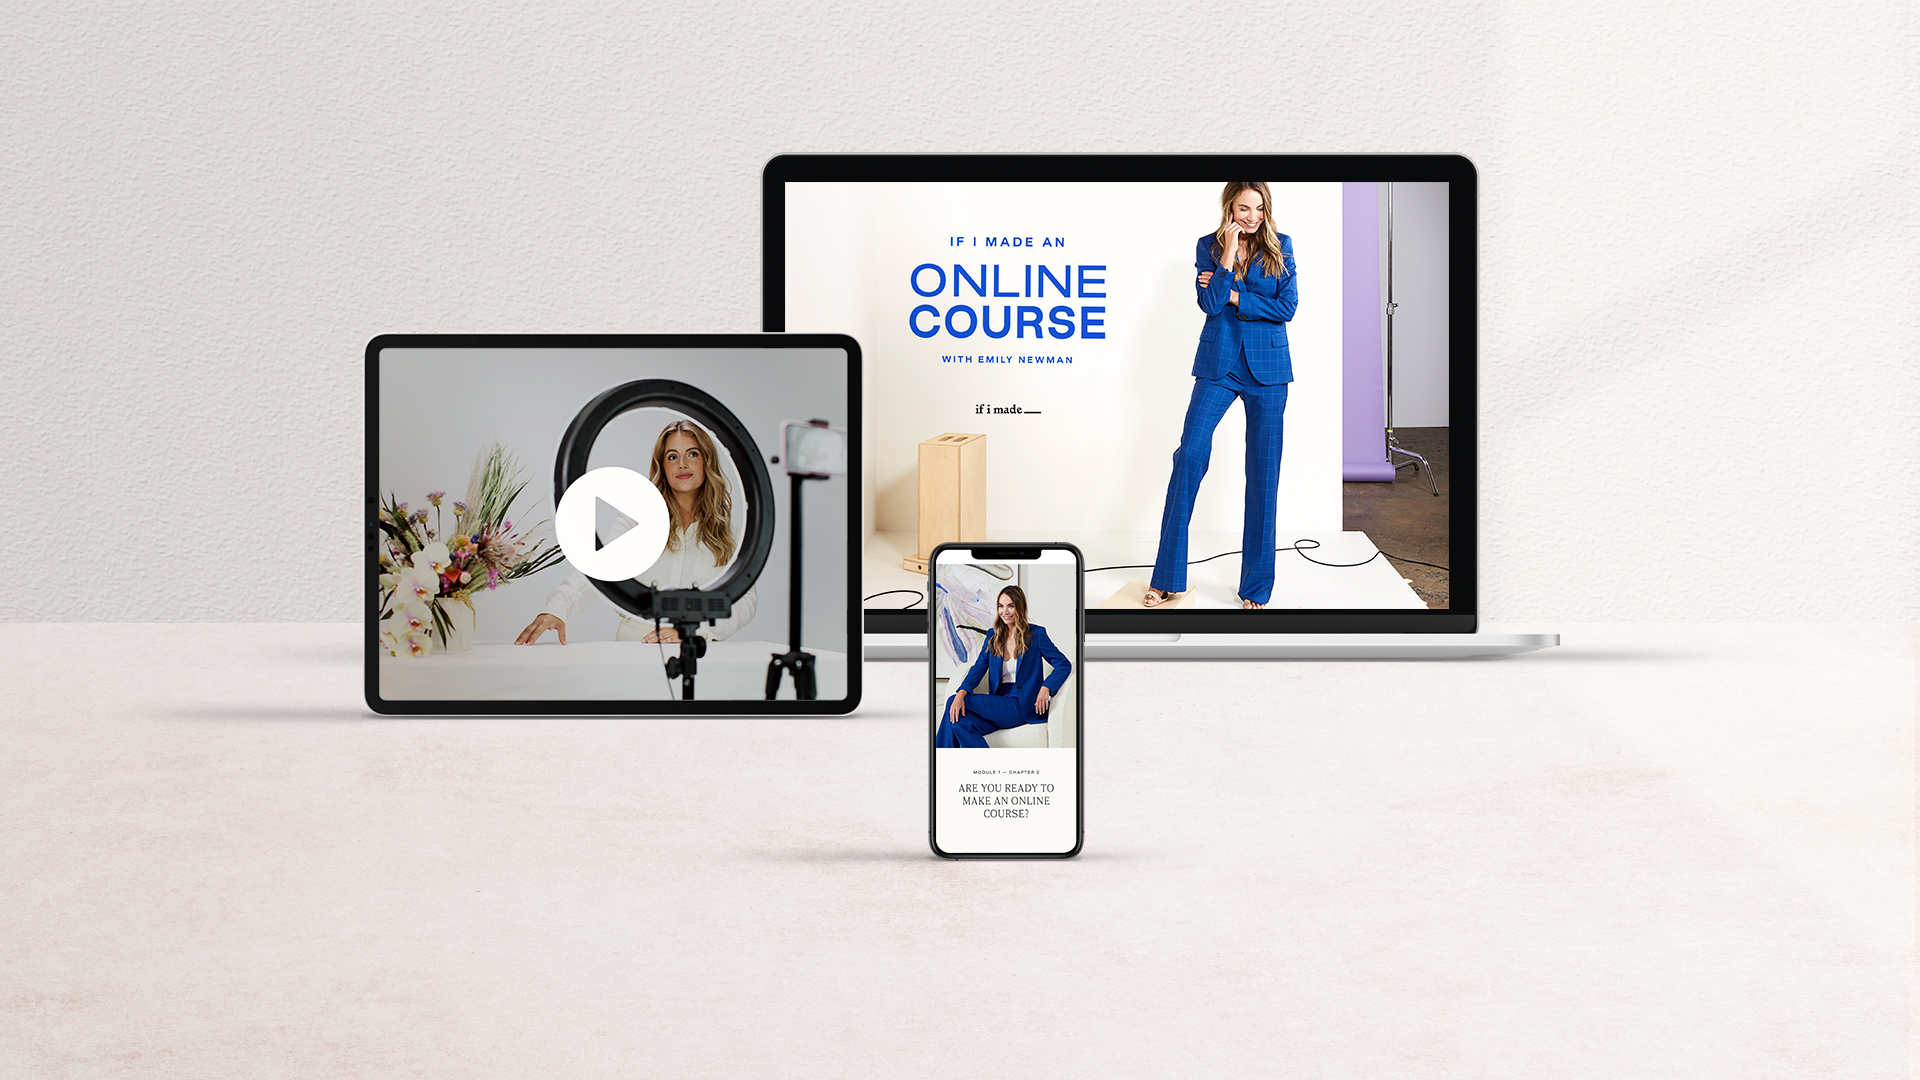 Emily Newman - If I Made an Online Course